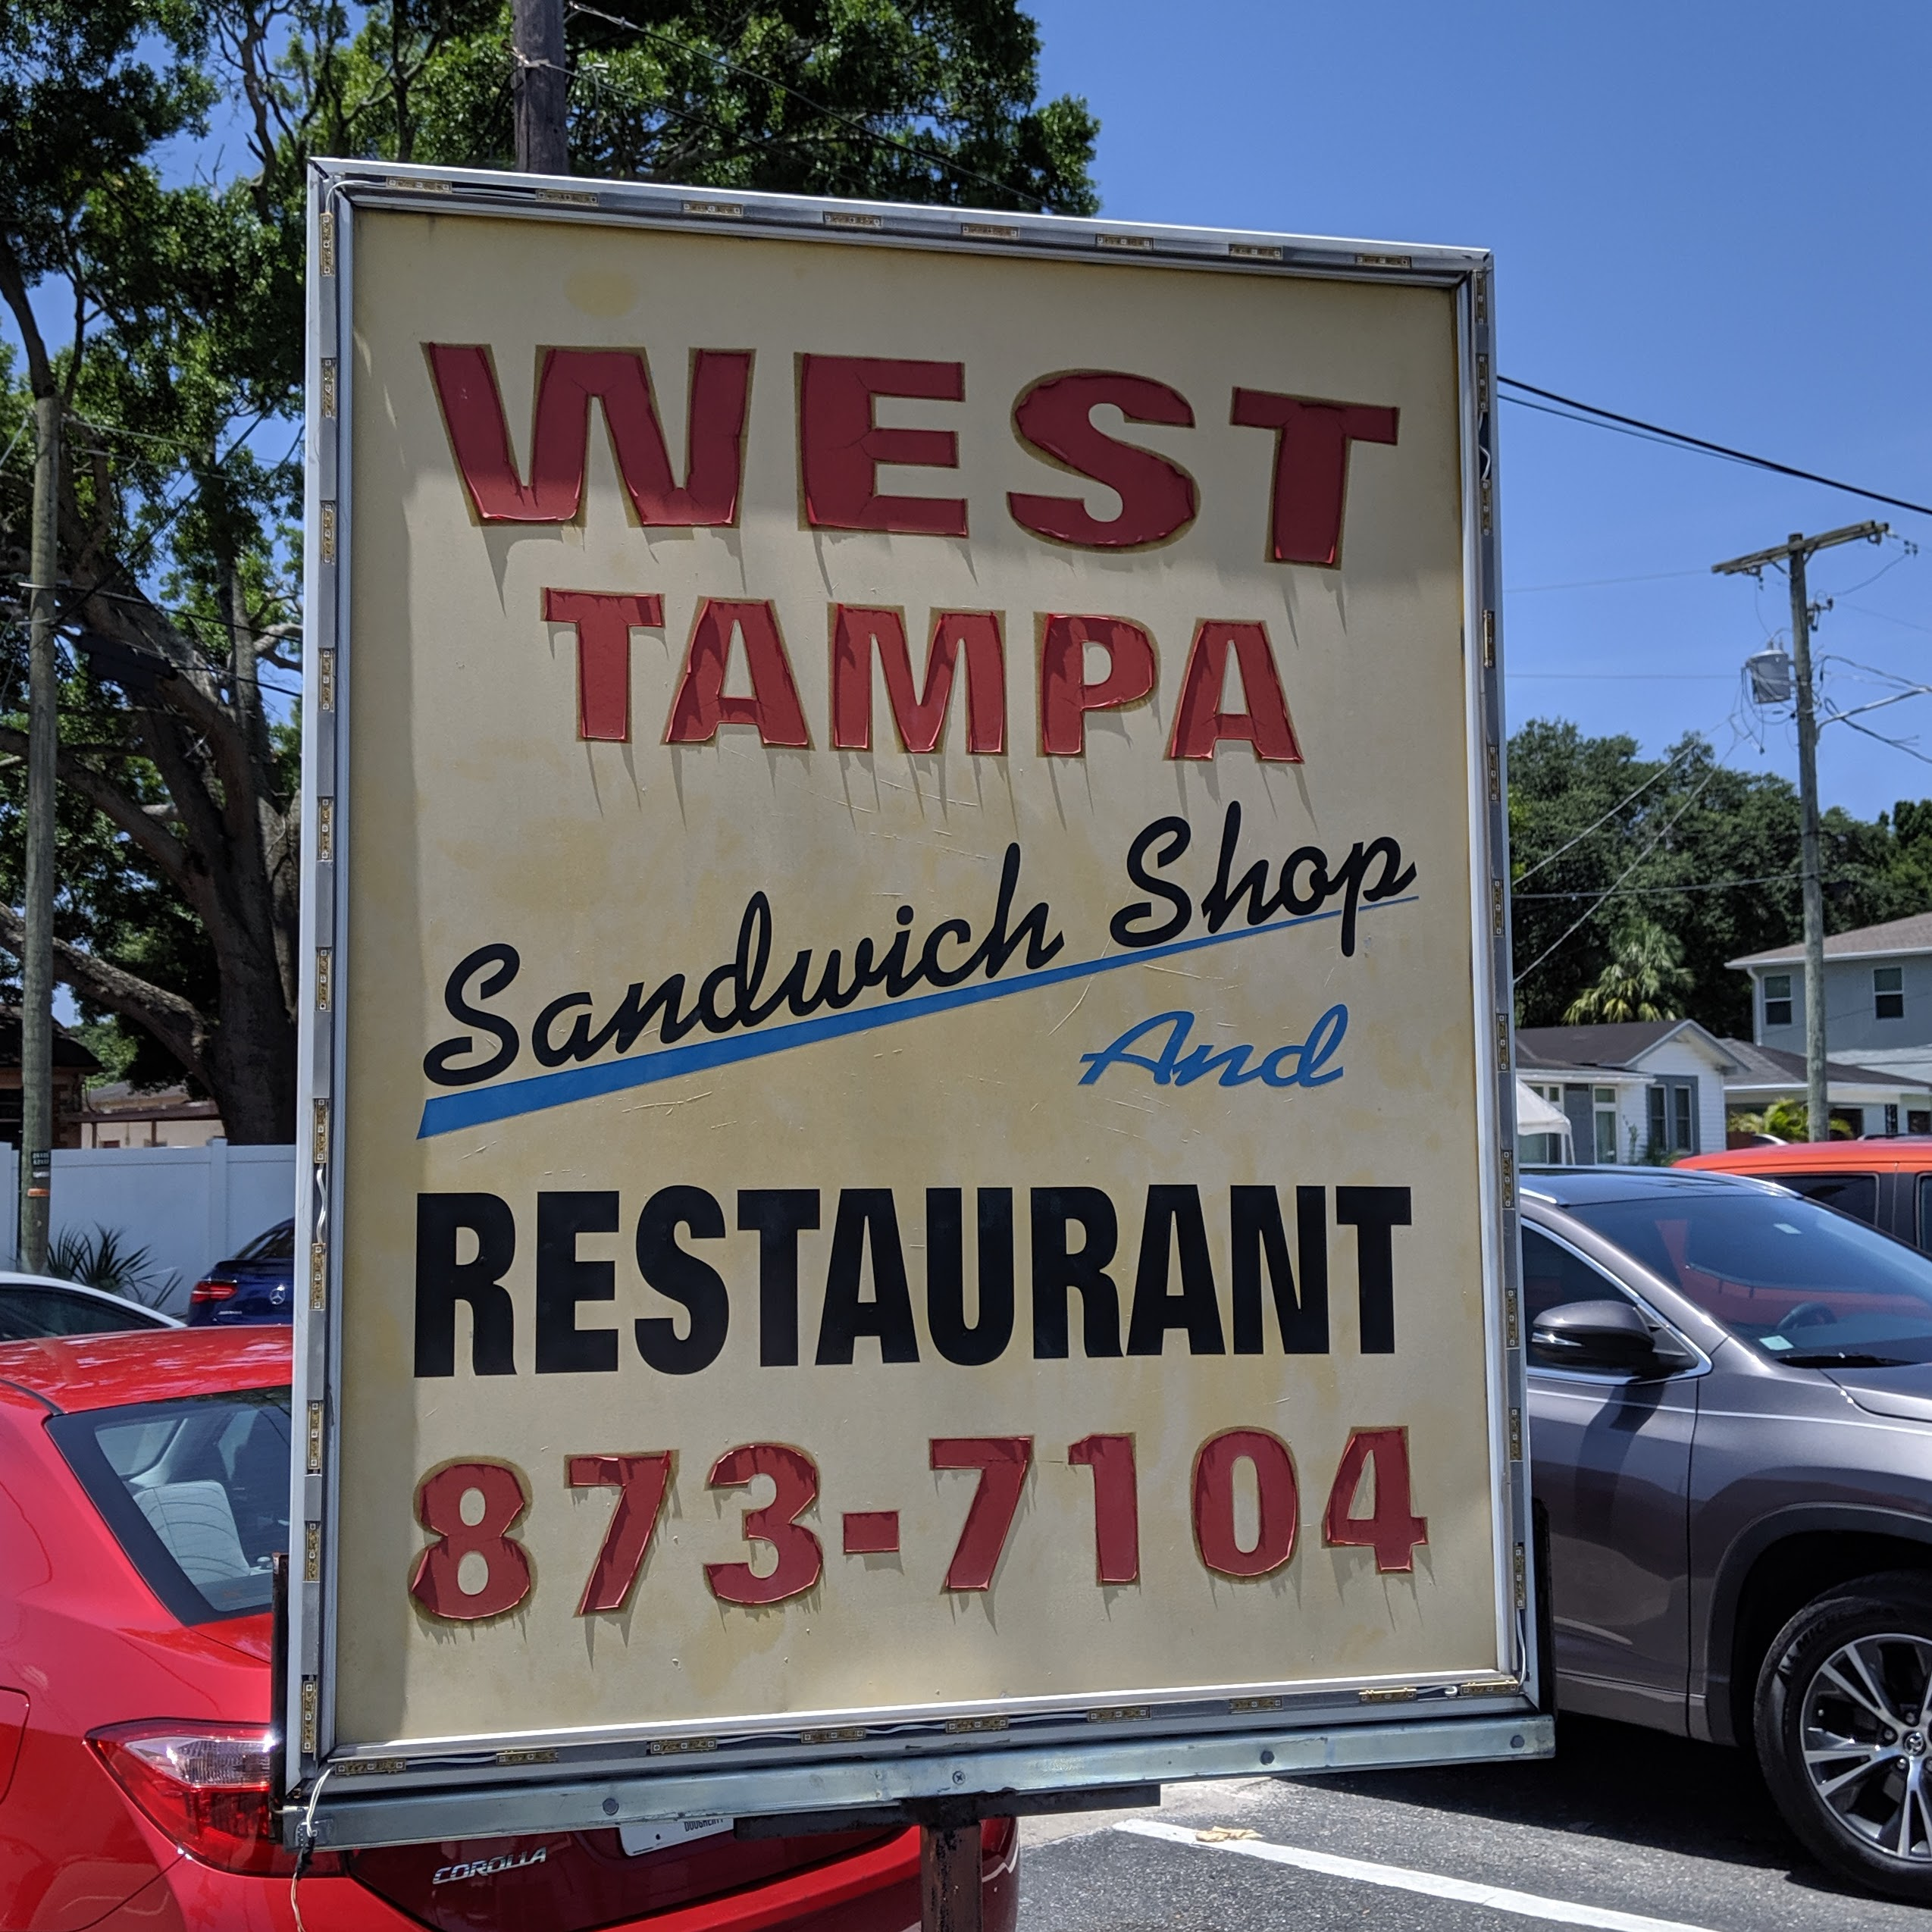 West Tampa Sandwich Shop and Restaurant sign